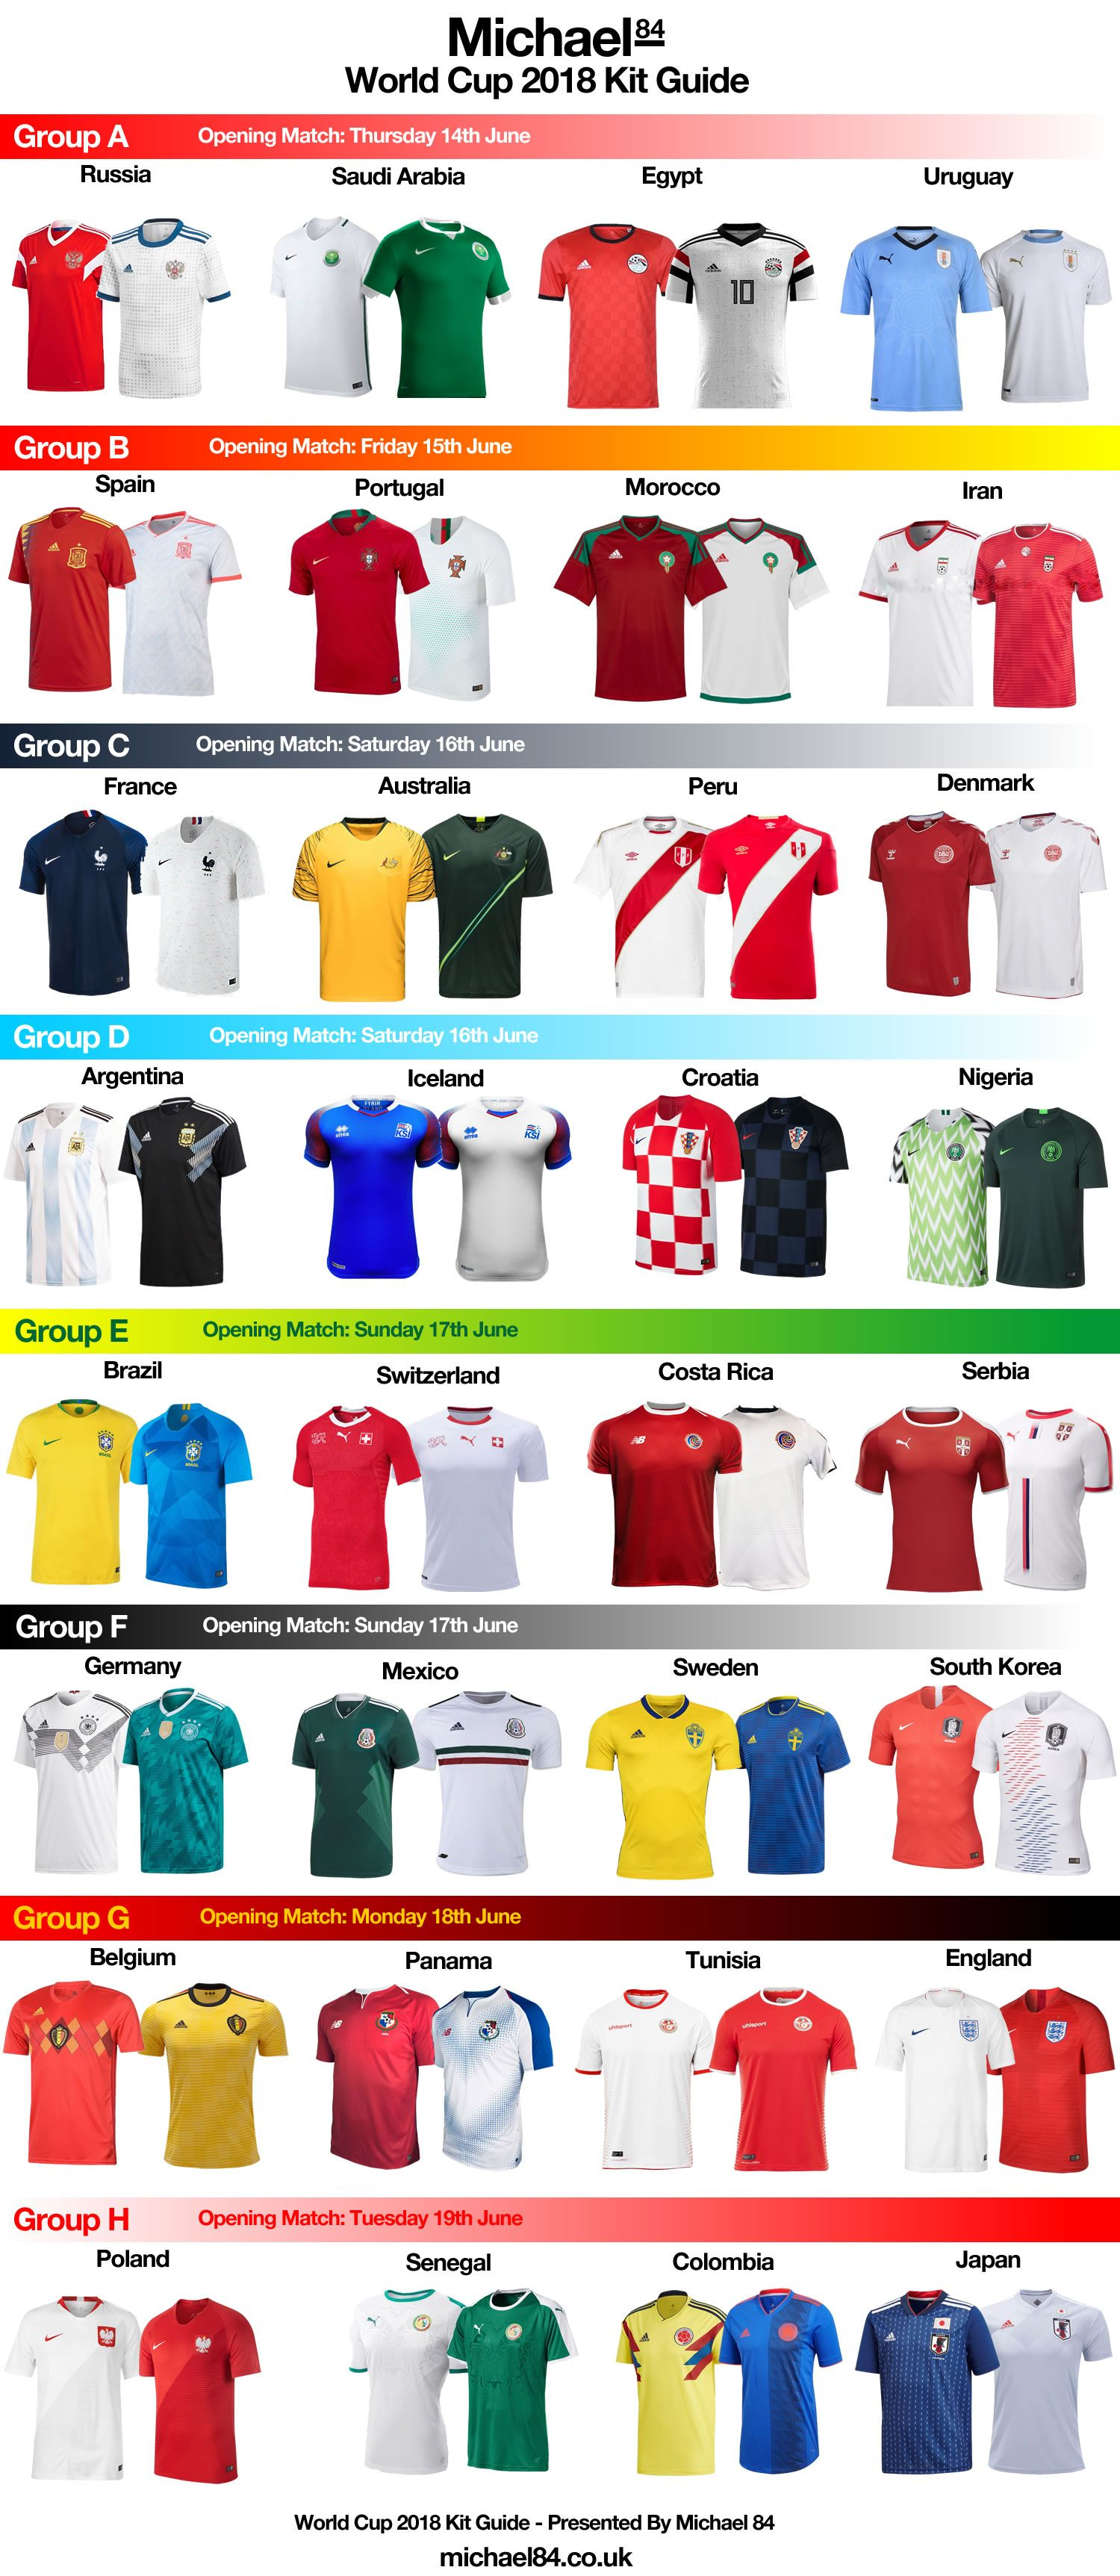 Every Home Away Football Shirts For The World Cup In 2018 Michael 84 World Cup Football Kits World Cup Kits